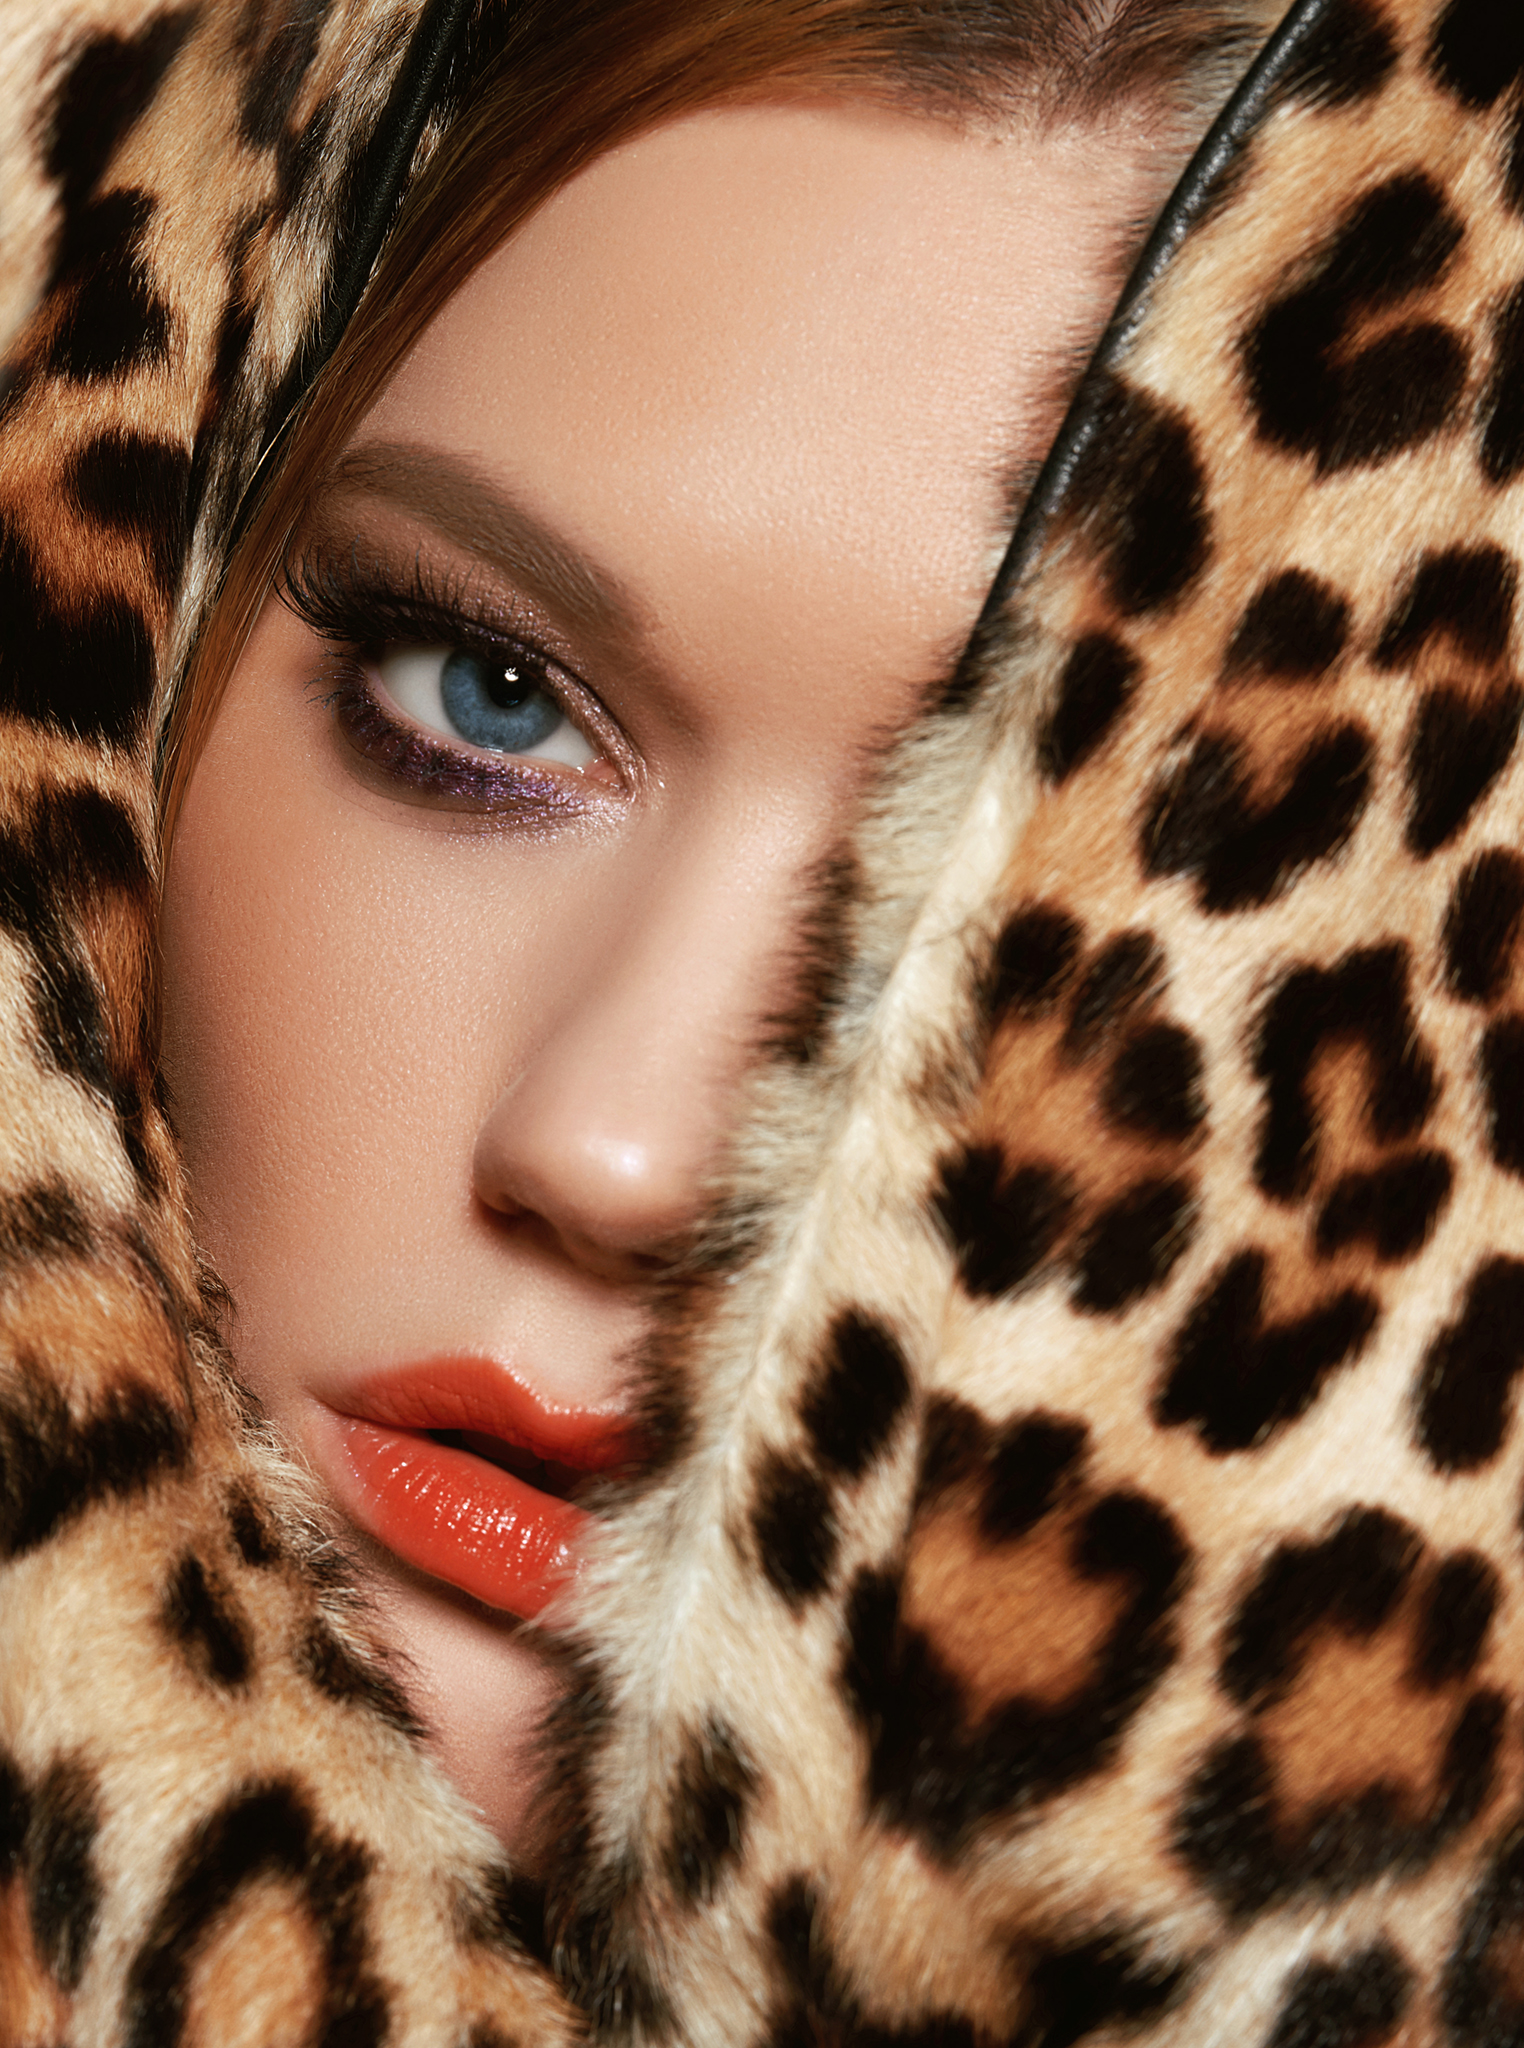 Editorial Beauty Photography by New York Beauty & Fashion Photographer, Antonio Martez.